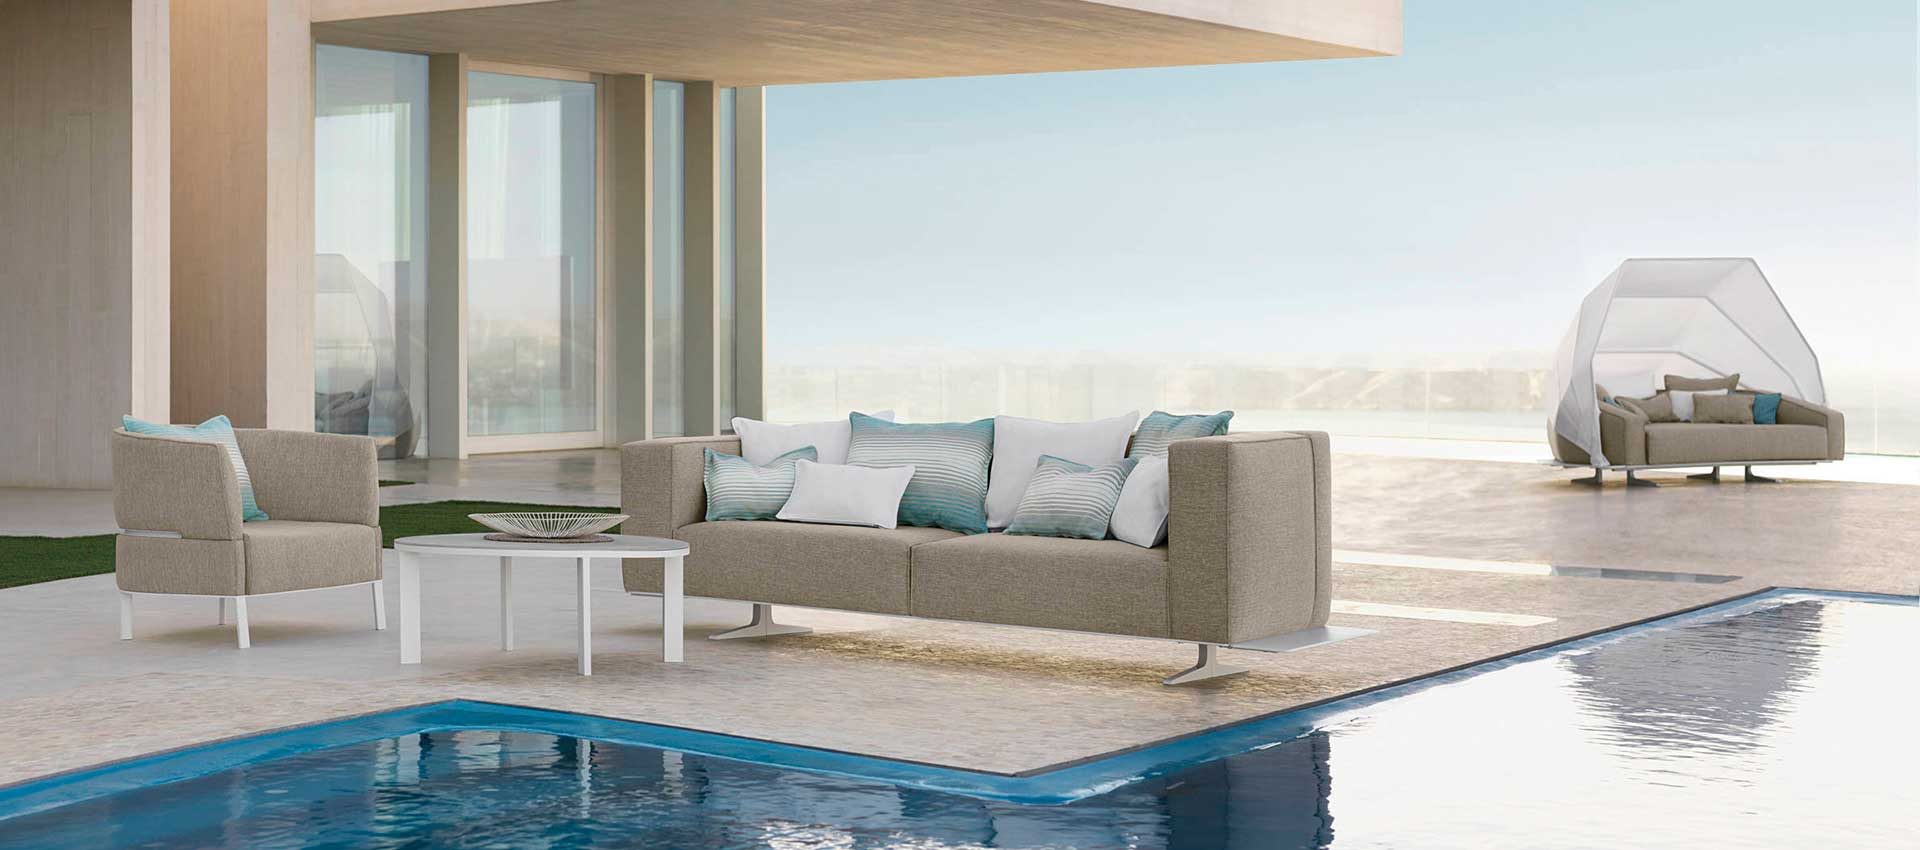 Outdoor Sofas -  Armchairs - Sunbed